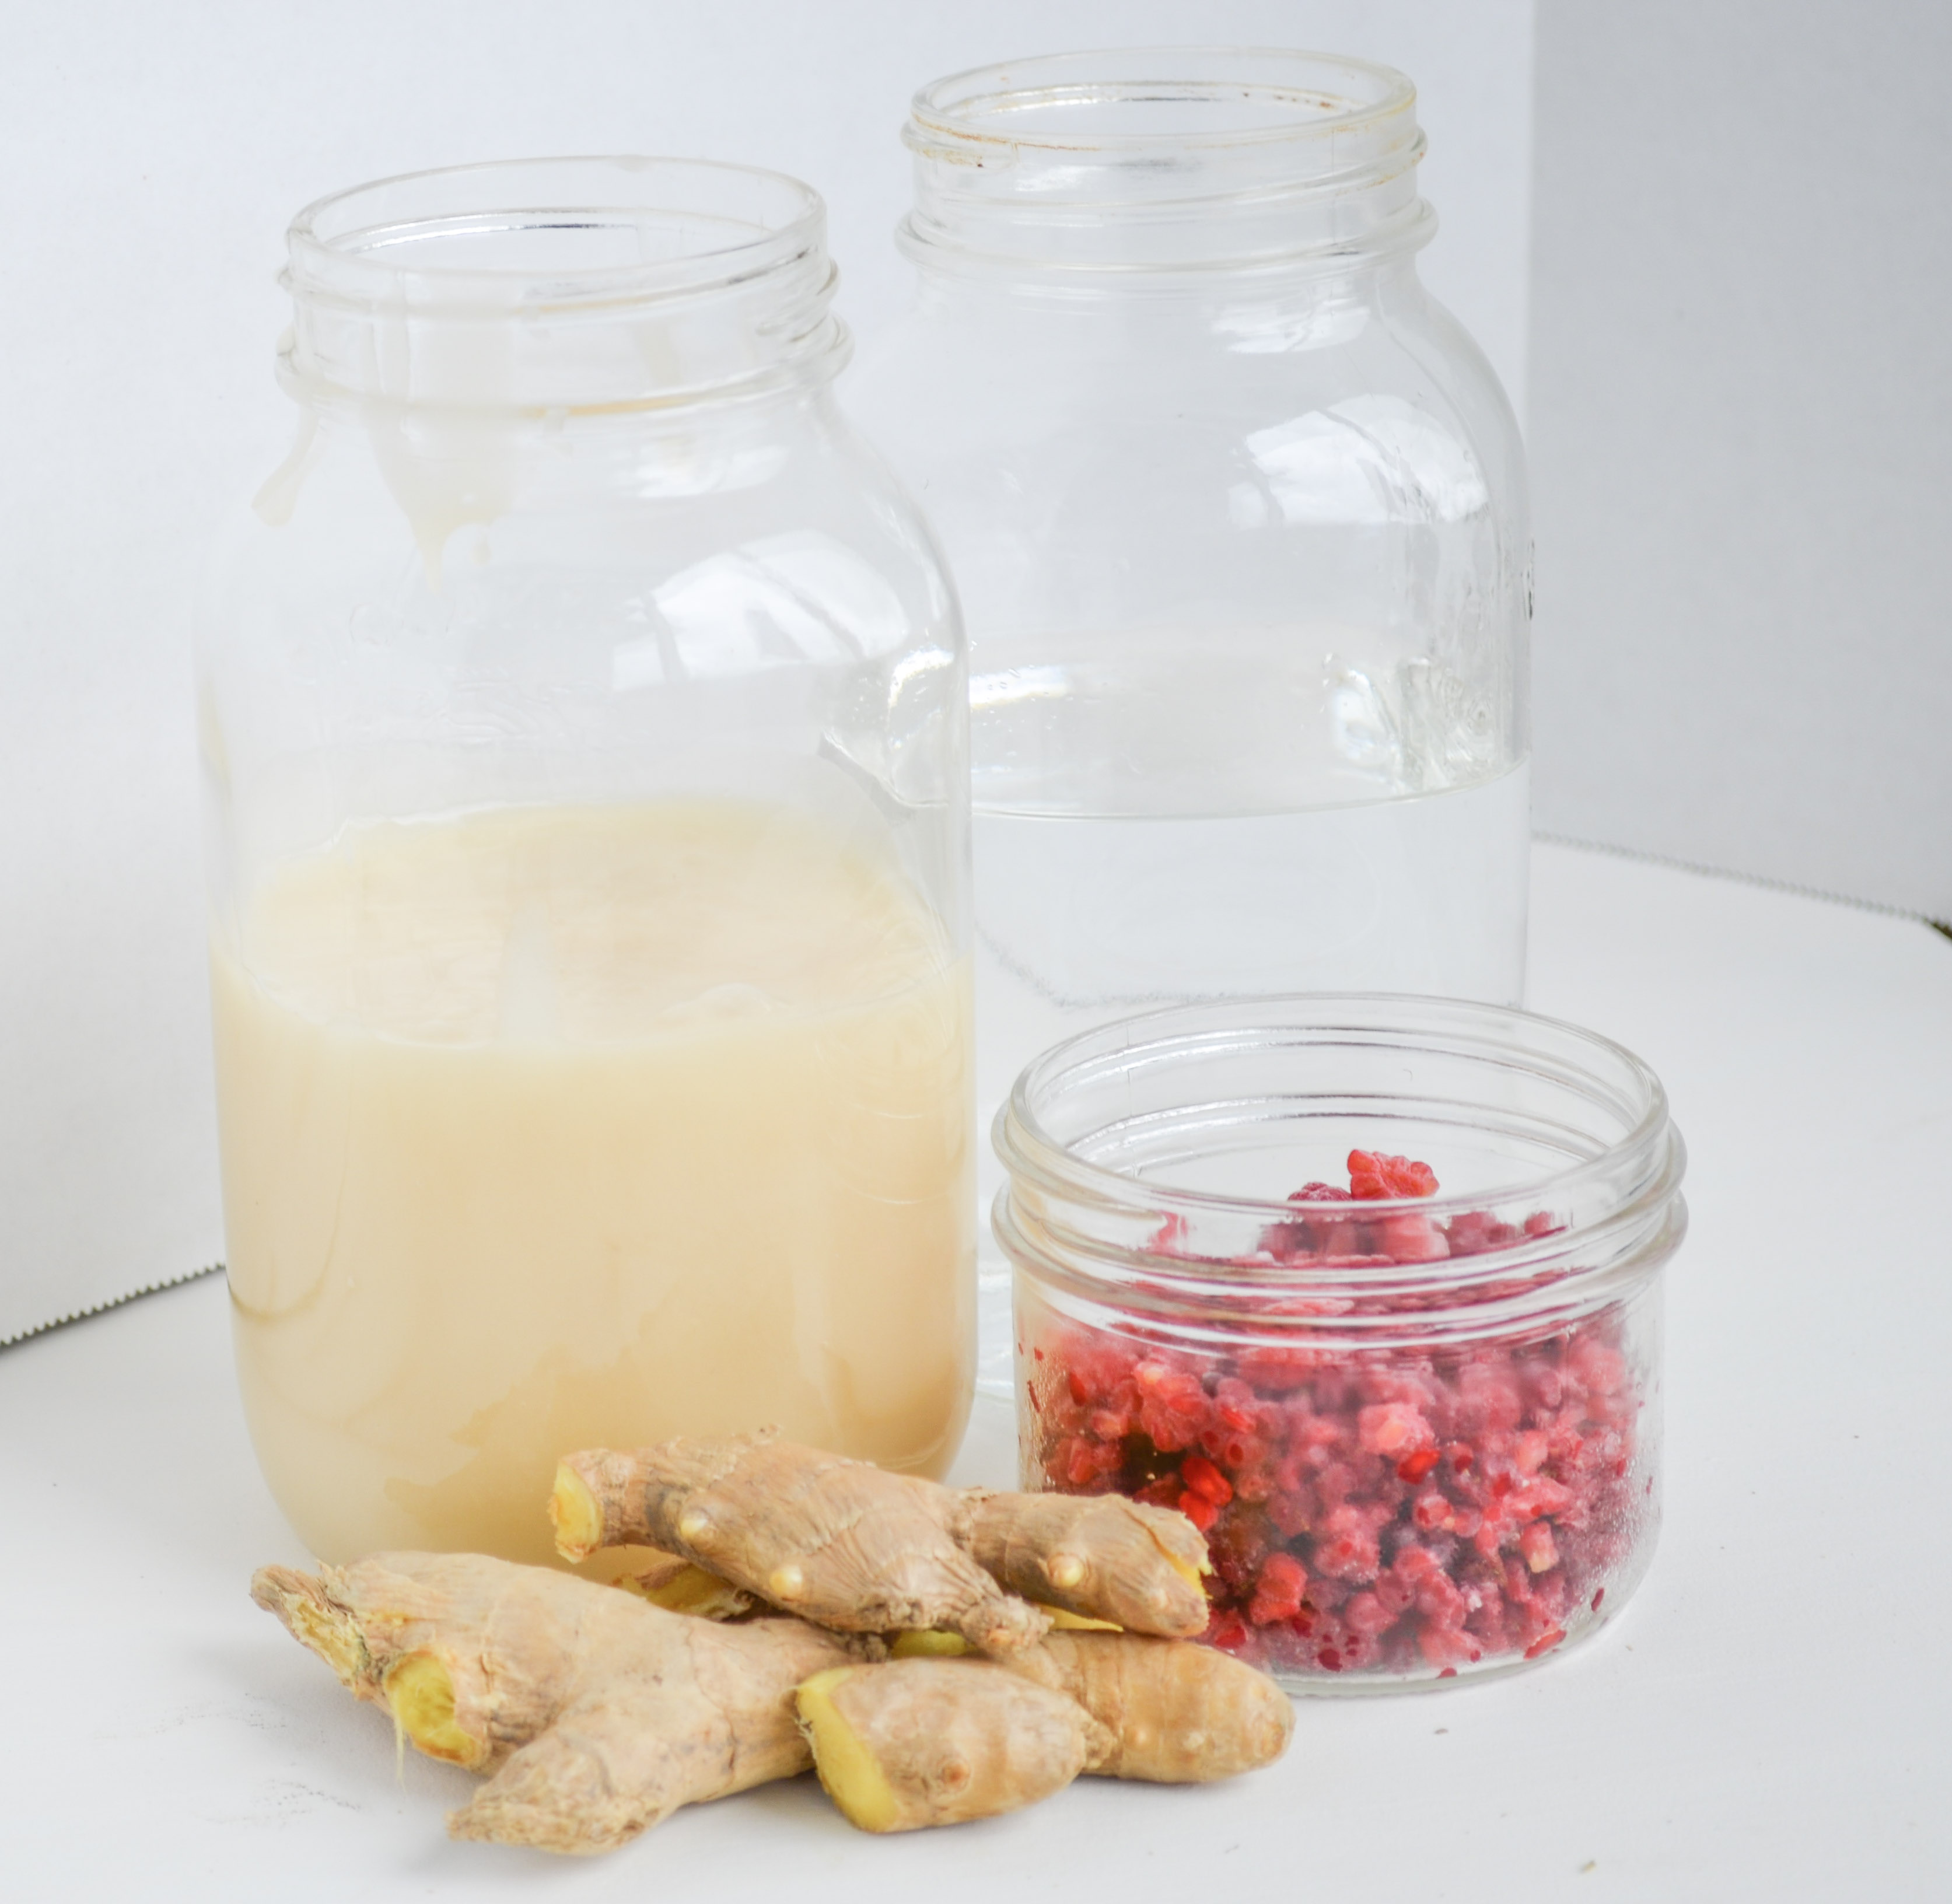 Mason jars with honey, raspberries and water, sitting next to ginger root.